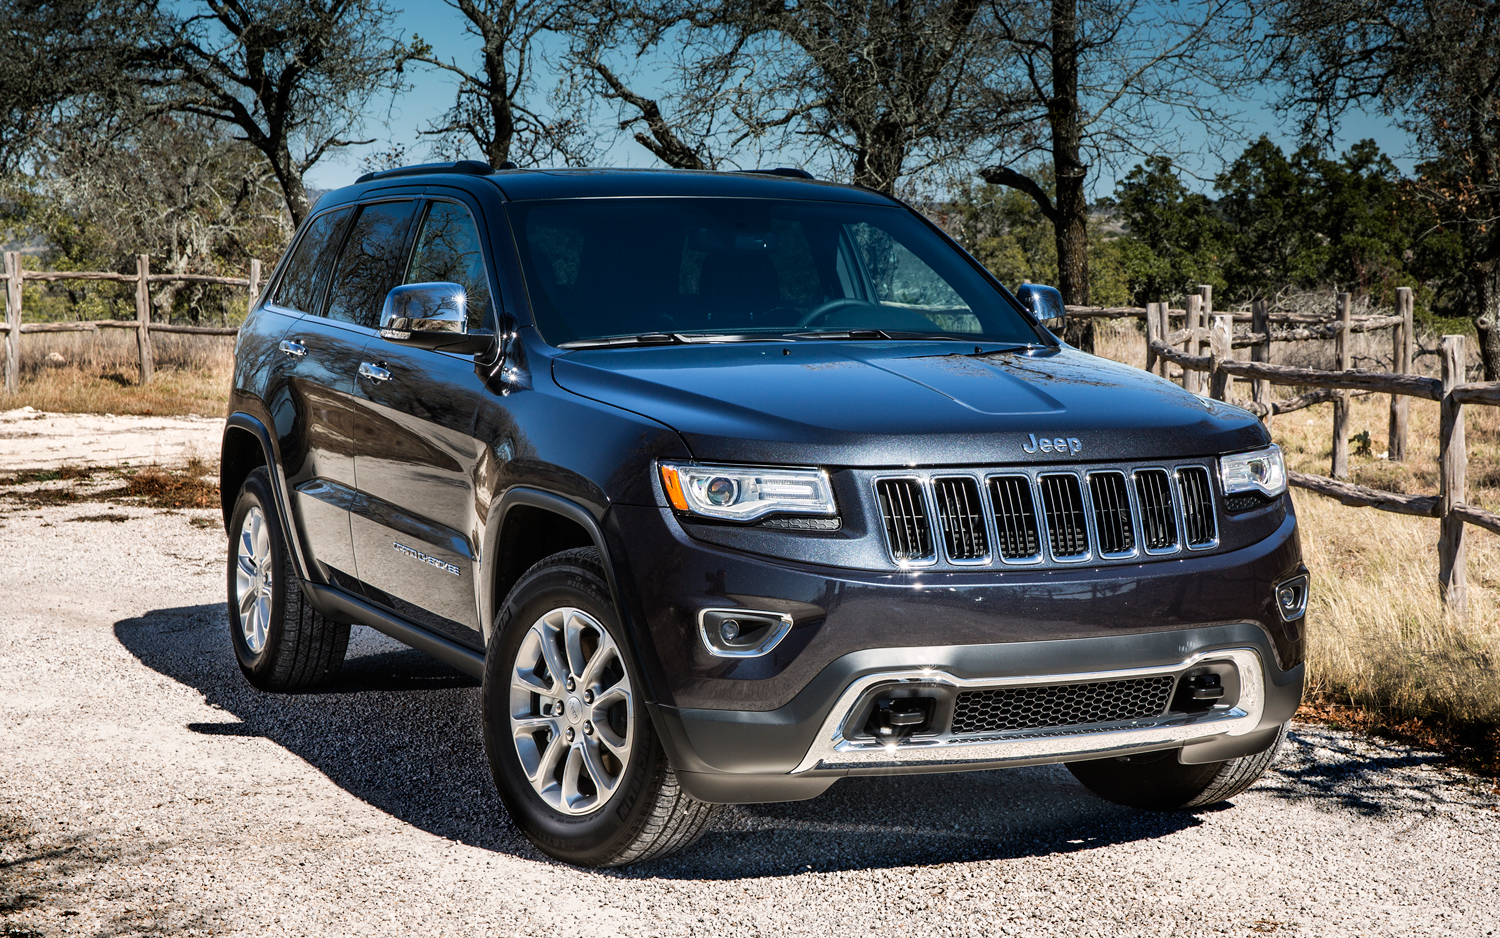 2014 jeep grand cherokee wl pictures information and specs auto. Black Bedroom Furniture Sets. Home Design Ideas